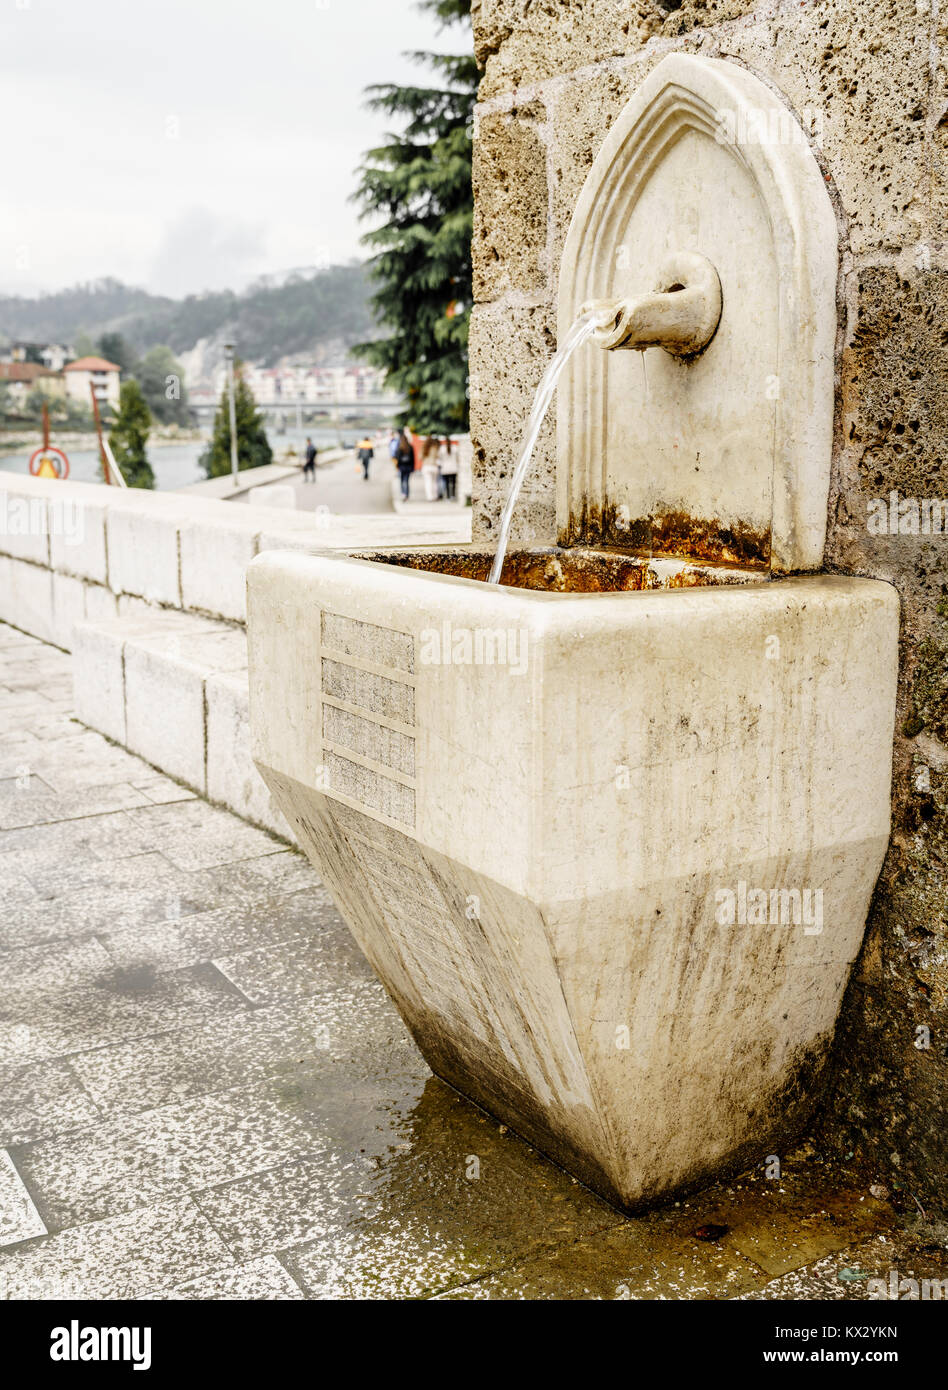 Ancient spring water fountain in the town of Konjic, Bosnia - Stock Image